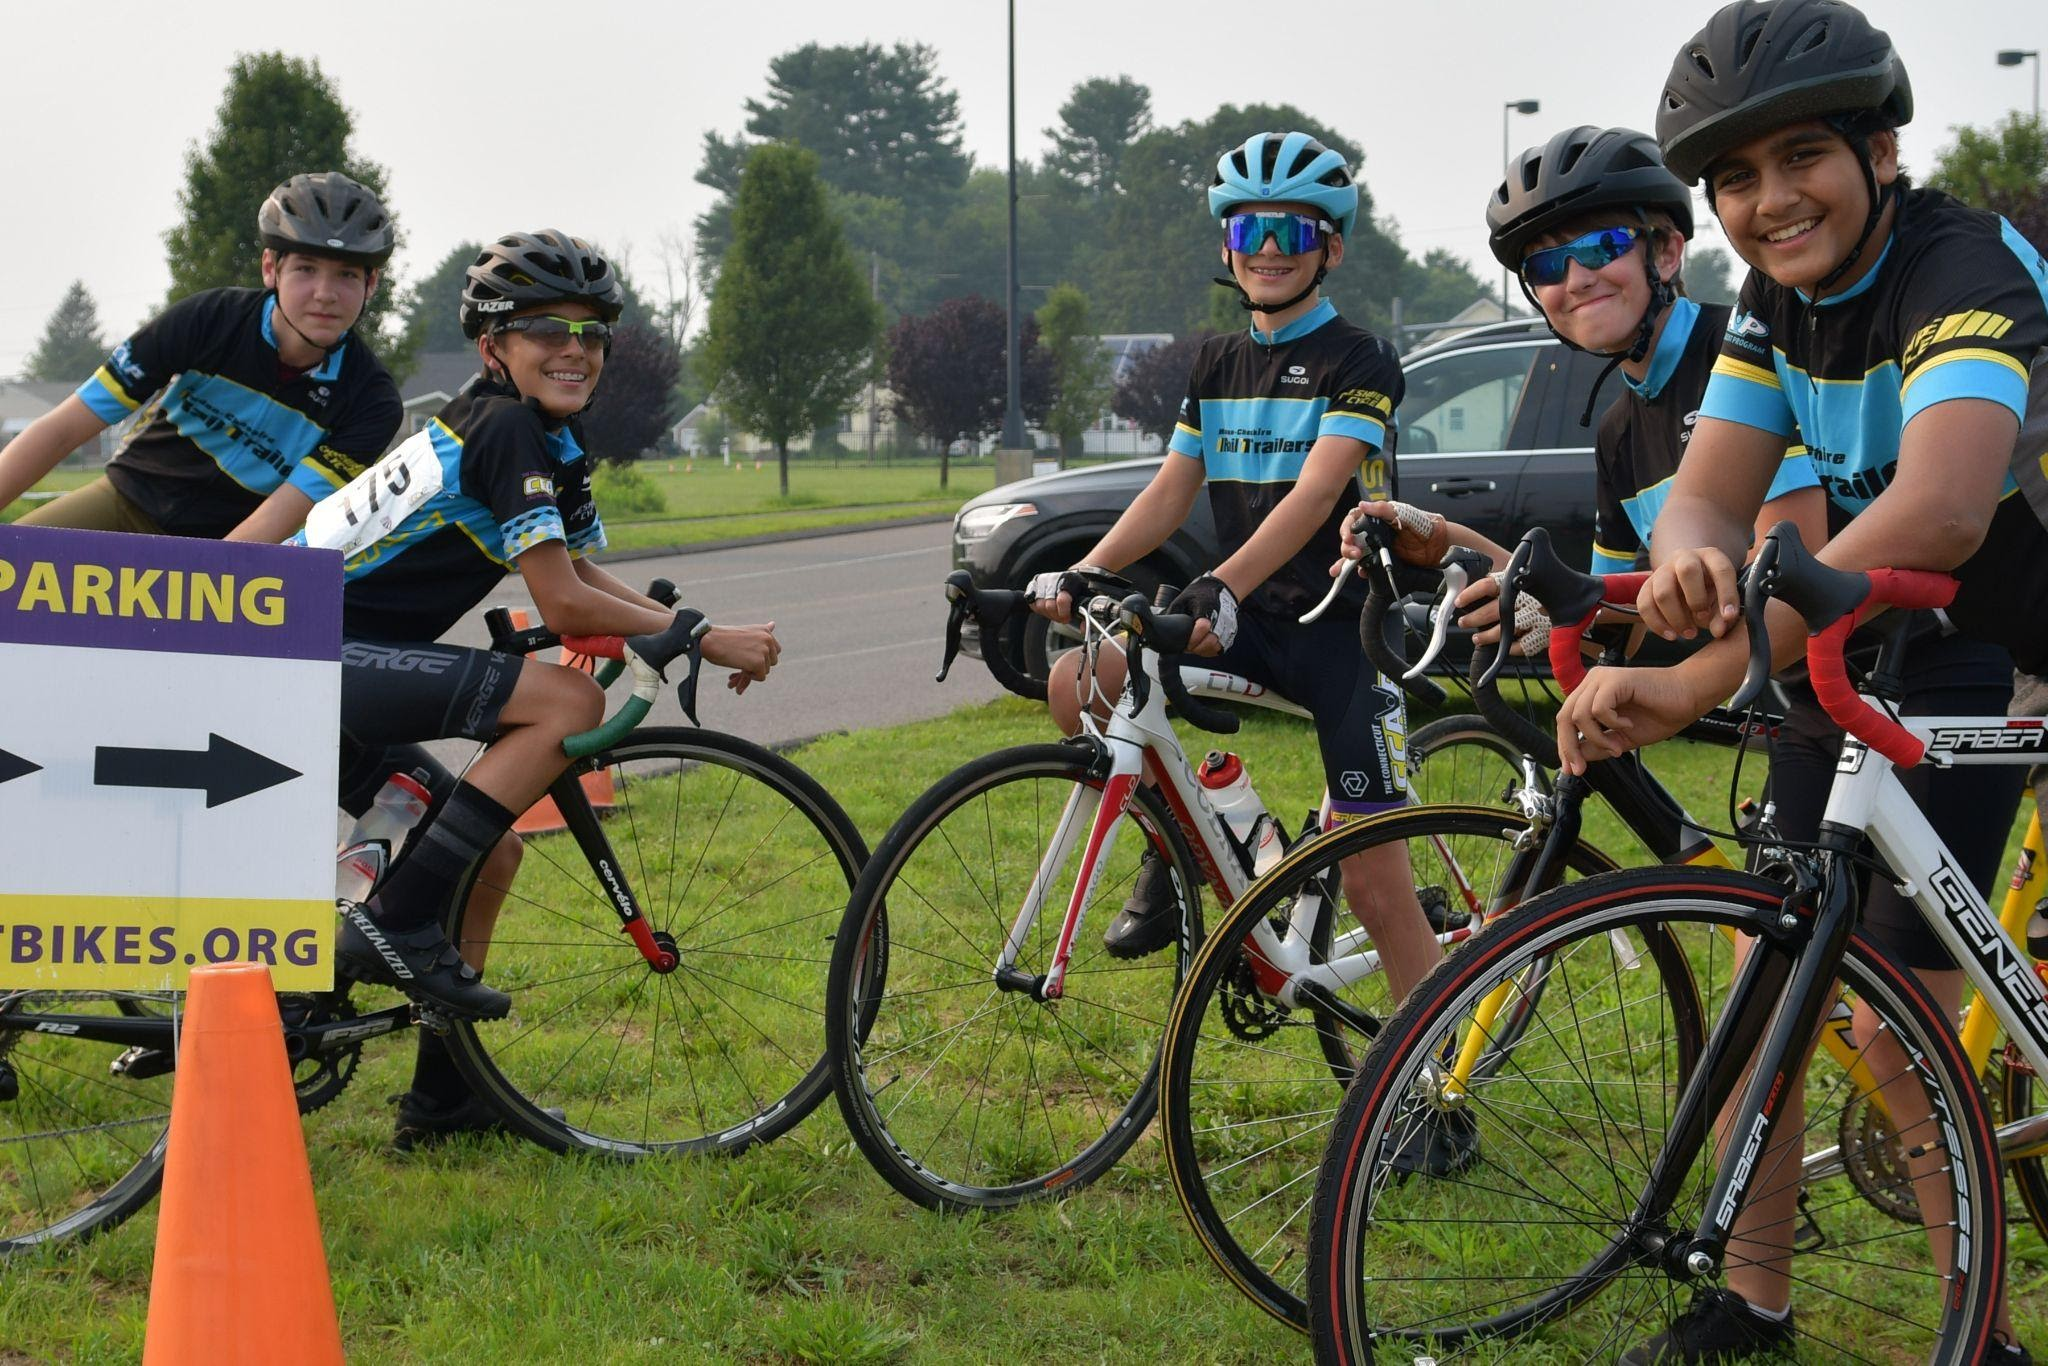 junior bike racers smiling after a race